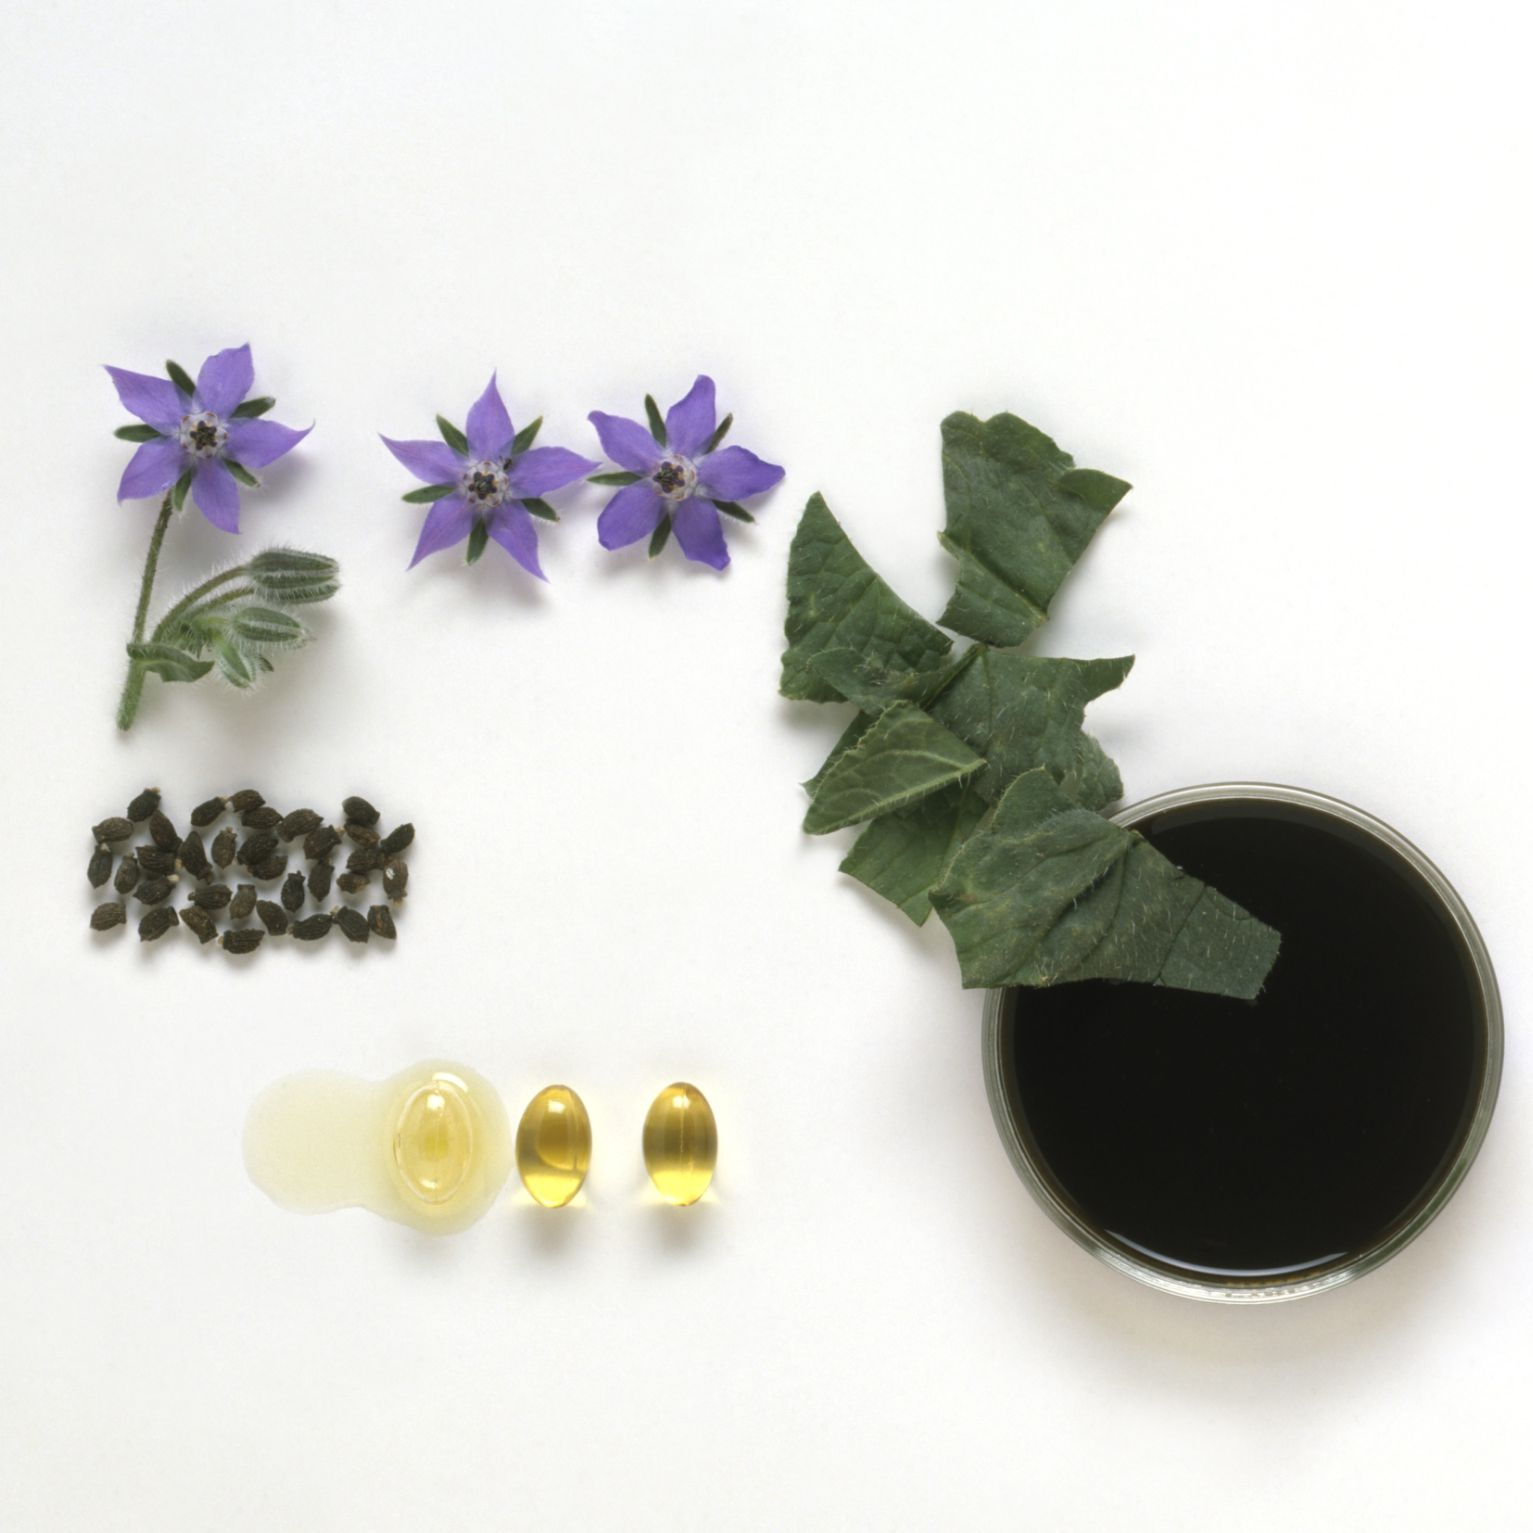 Borage Oil: Benefits, Side Effects, Dosage, and Interactions